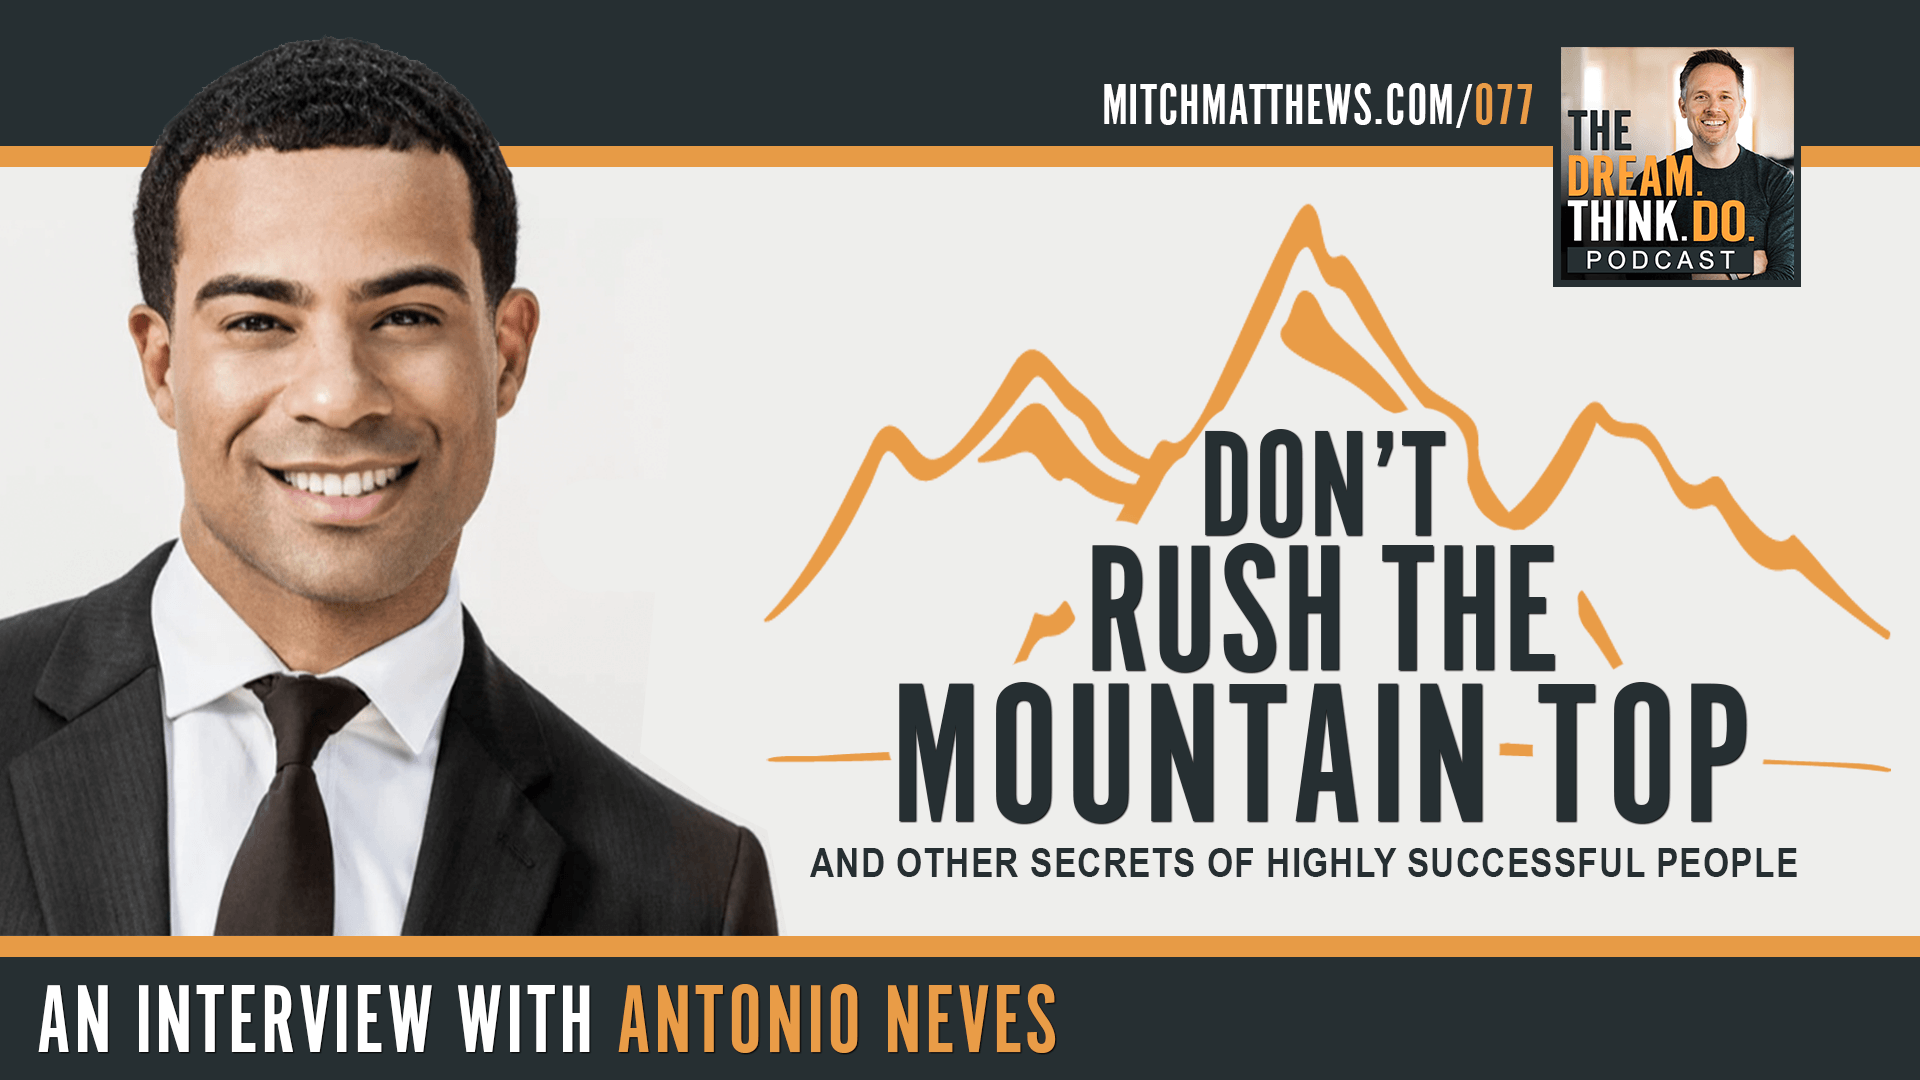 Antonio Neves | Don't rush the mountain top [and other surprising secrets of highly successful people]